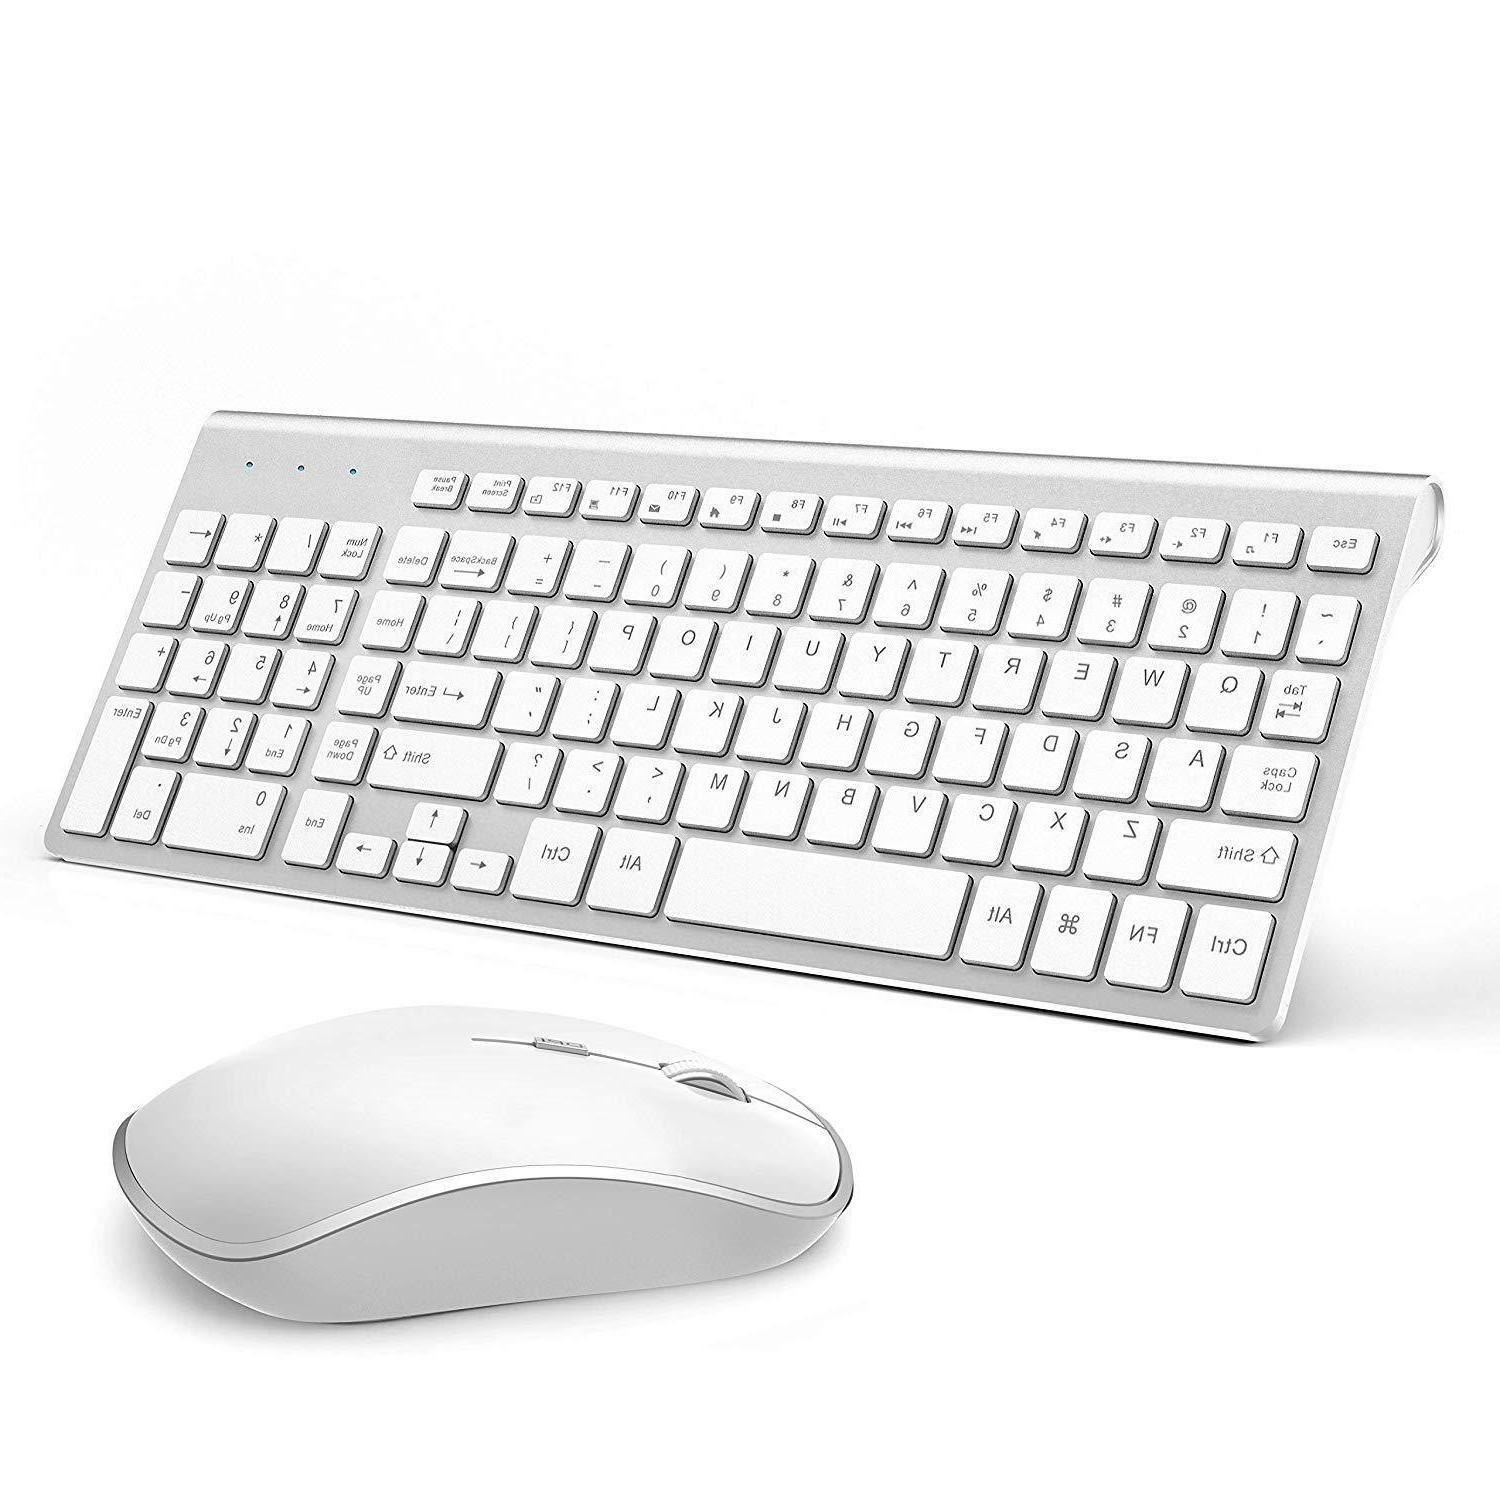 Wireless Keyboard Bundle Set Mac Full Size 2.4G